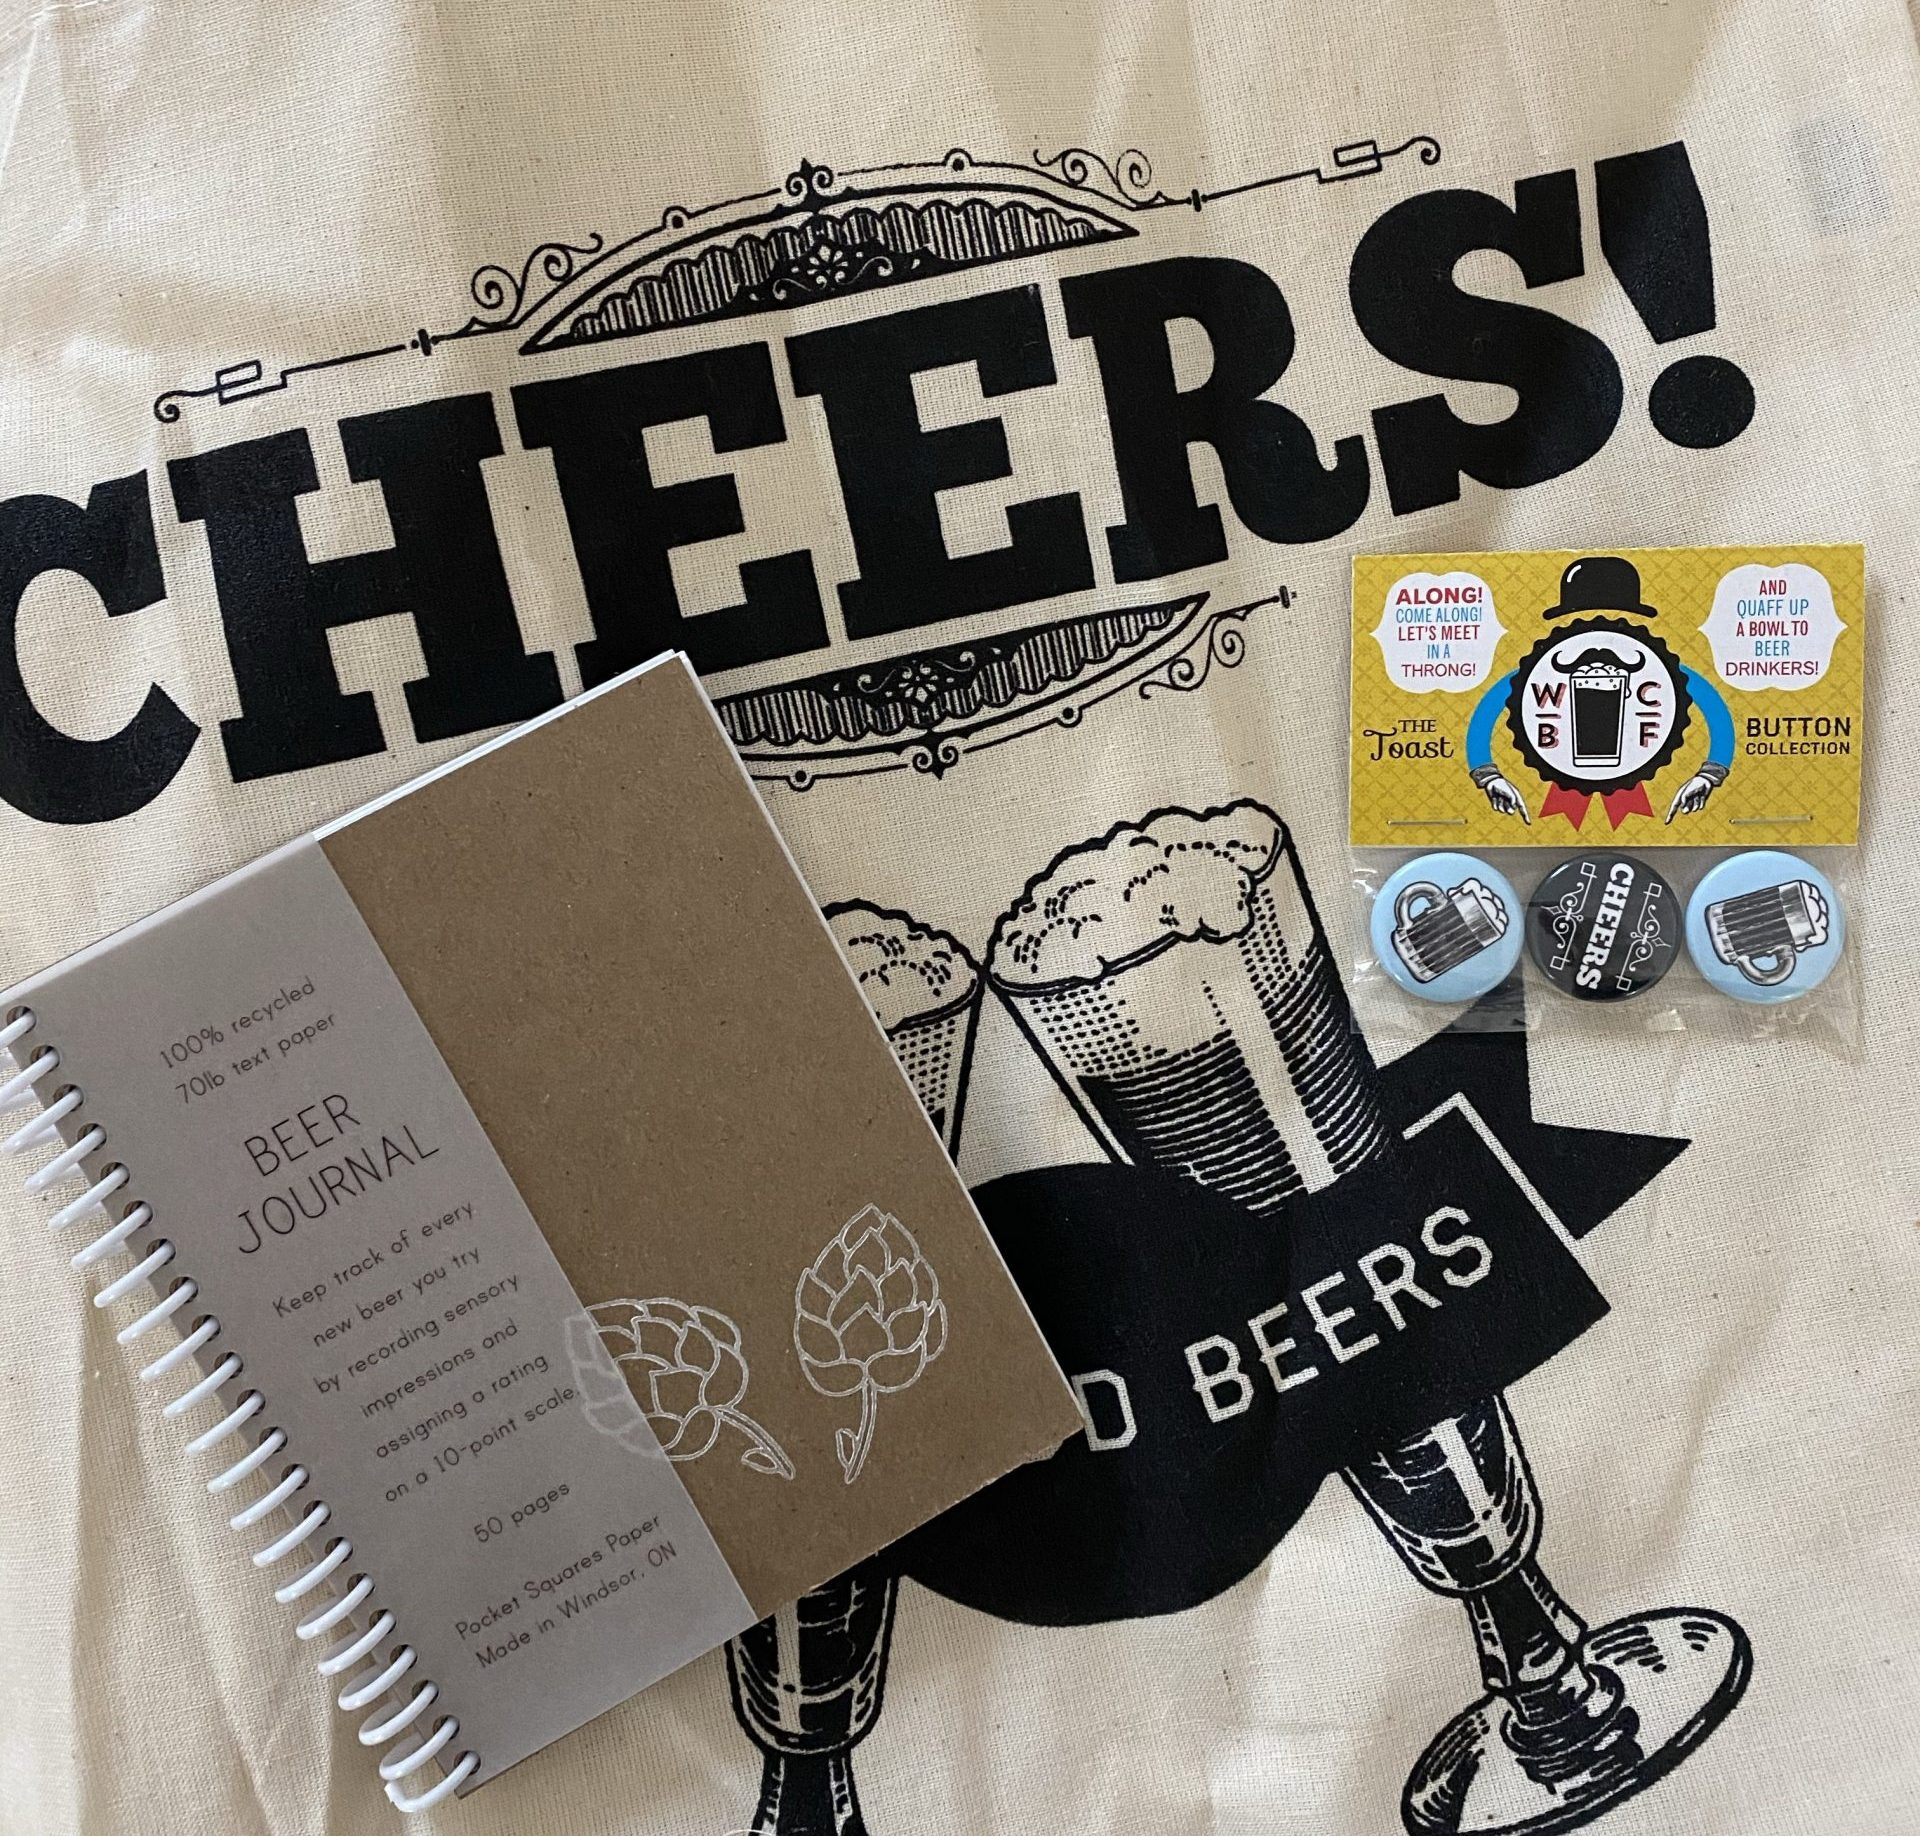 Some of the gifts included in the Beers Beards kit in the Bevy Box.